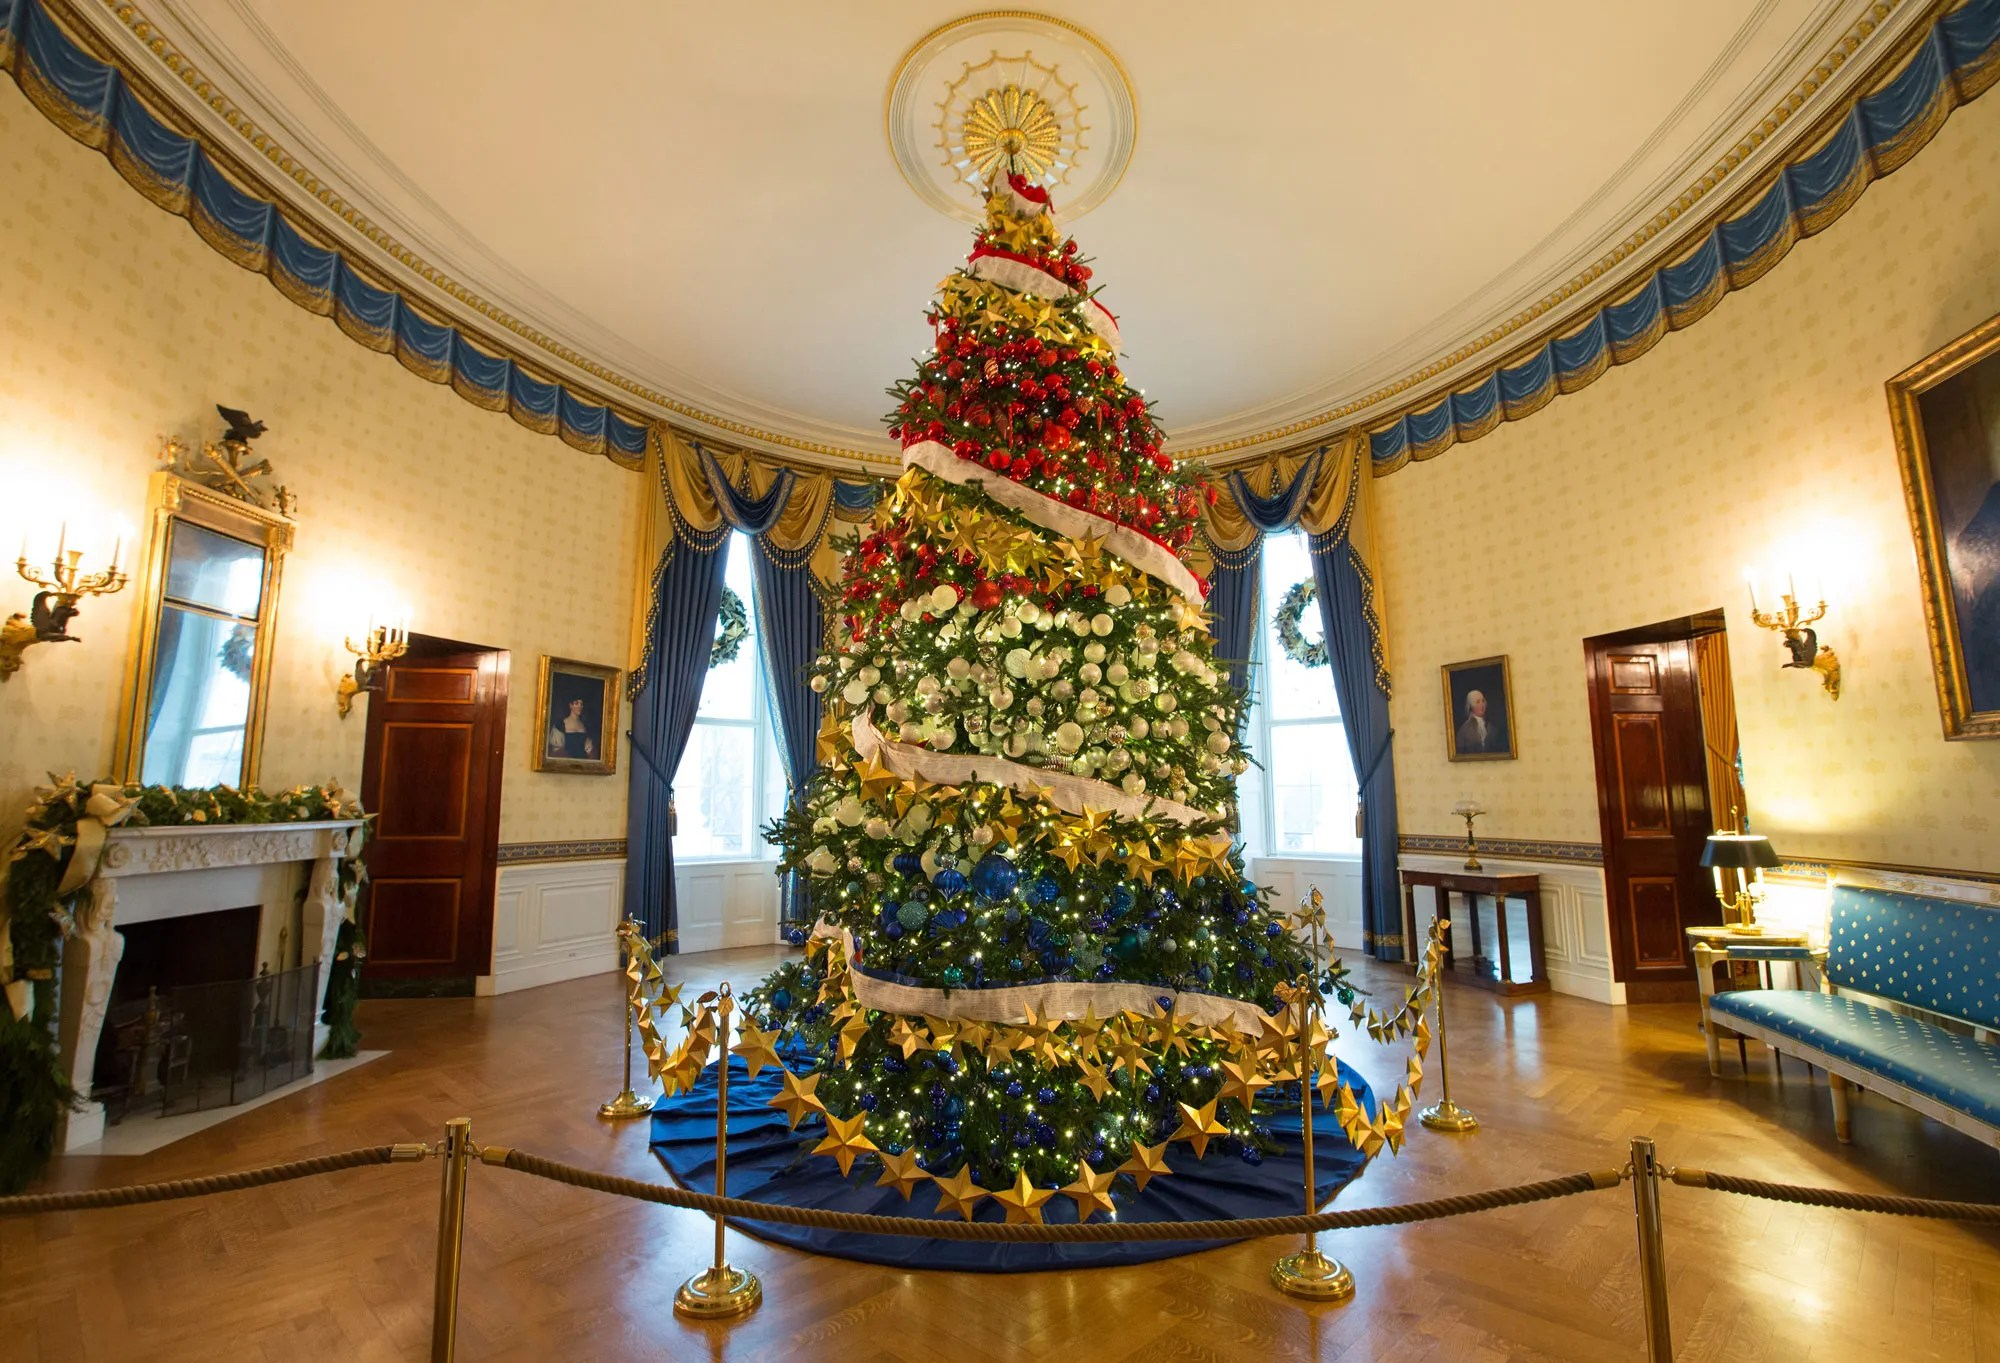 Inside the 2015 White House Christmas Decorations Created by     Inside the 2015 White House Christmas Decorations Created by FLOTUS s  Favorite Planner  Bryan Rafanelli   Vogue